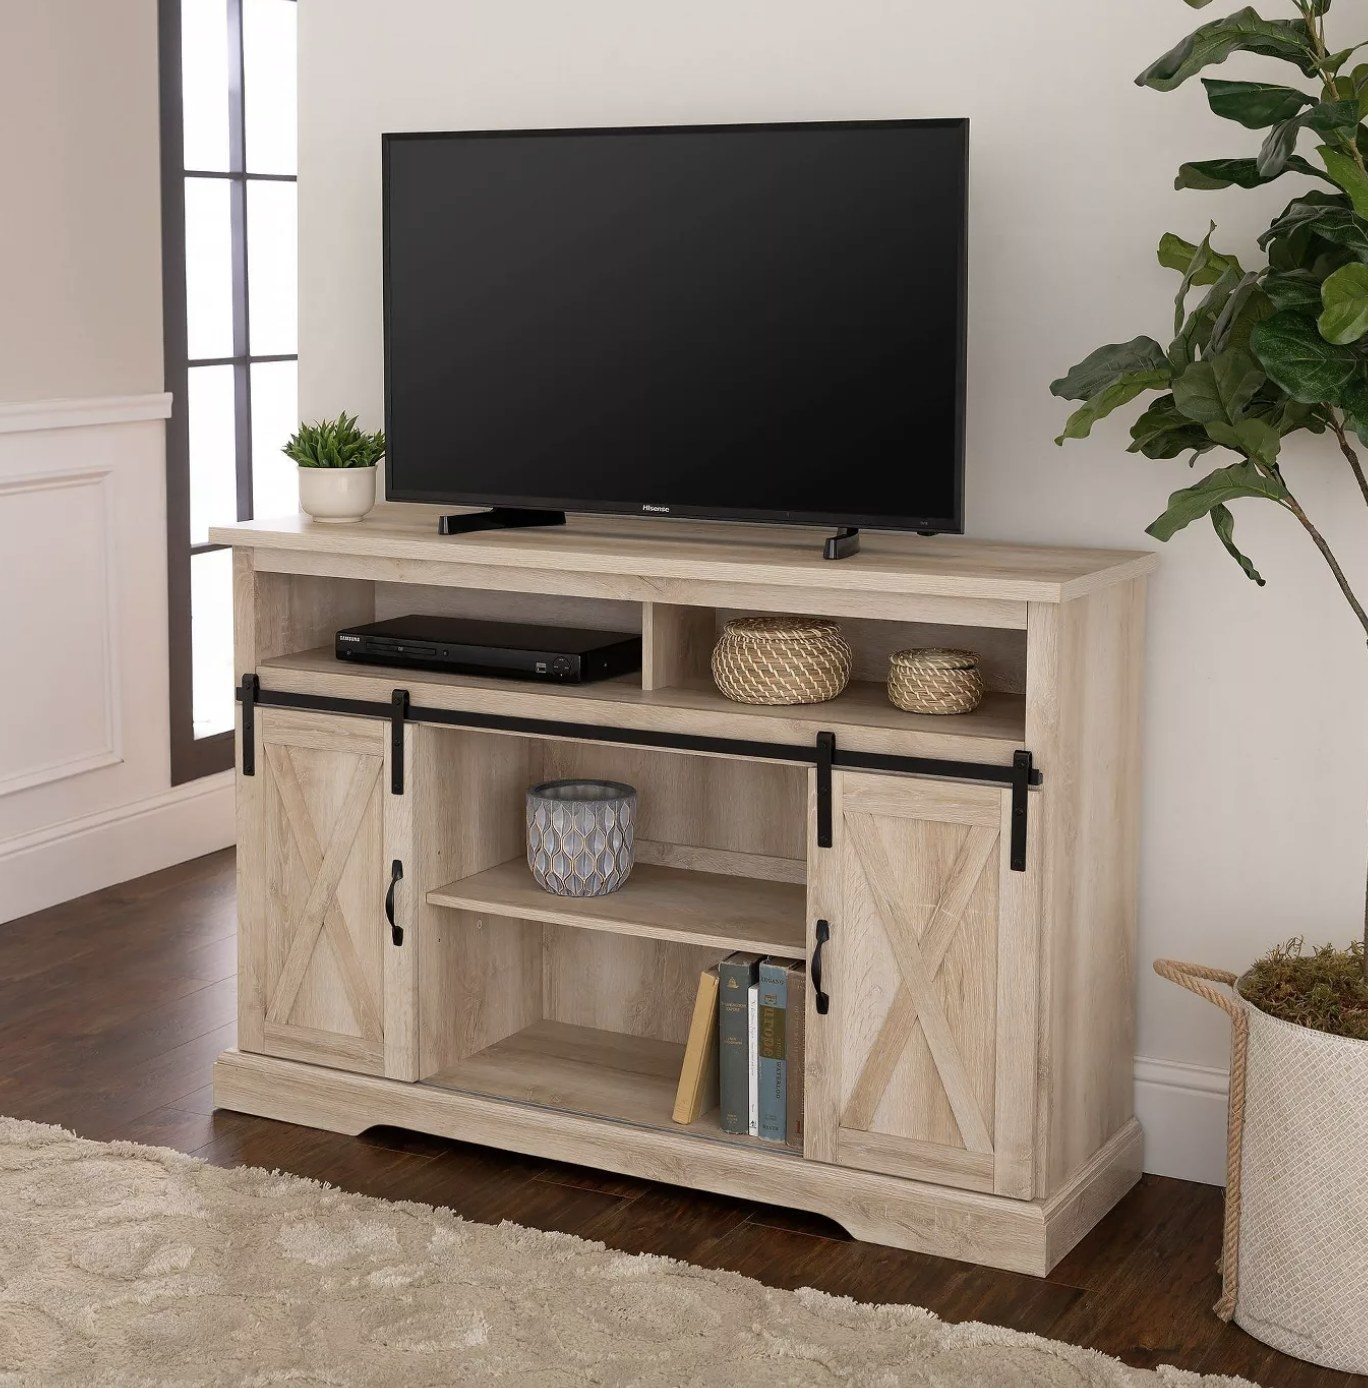 the TV stand in white oak with a tv, trinkets, and a DVD player shown on it